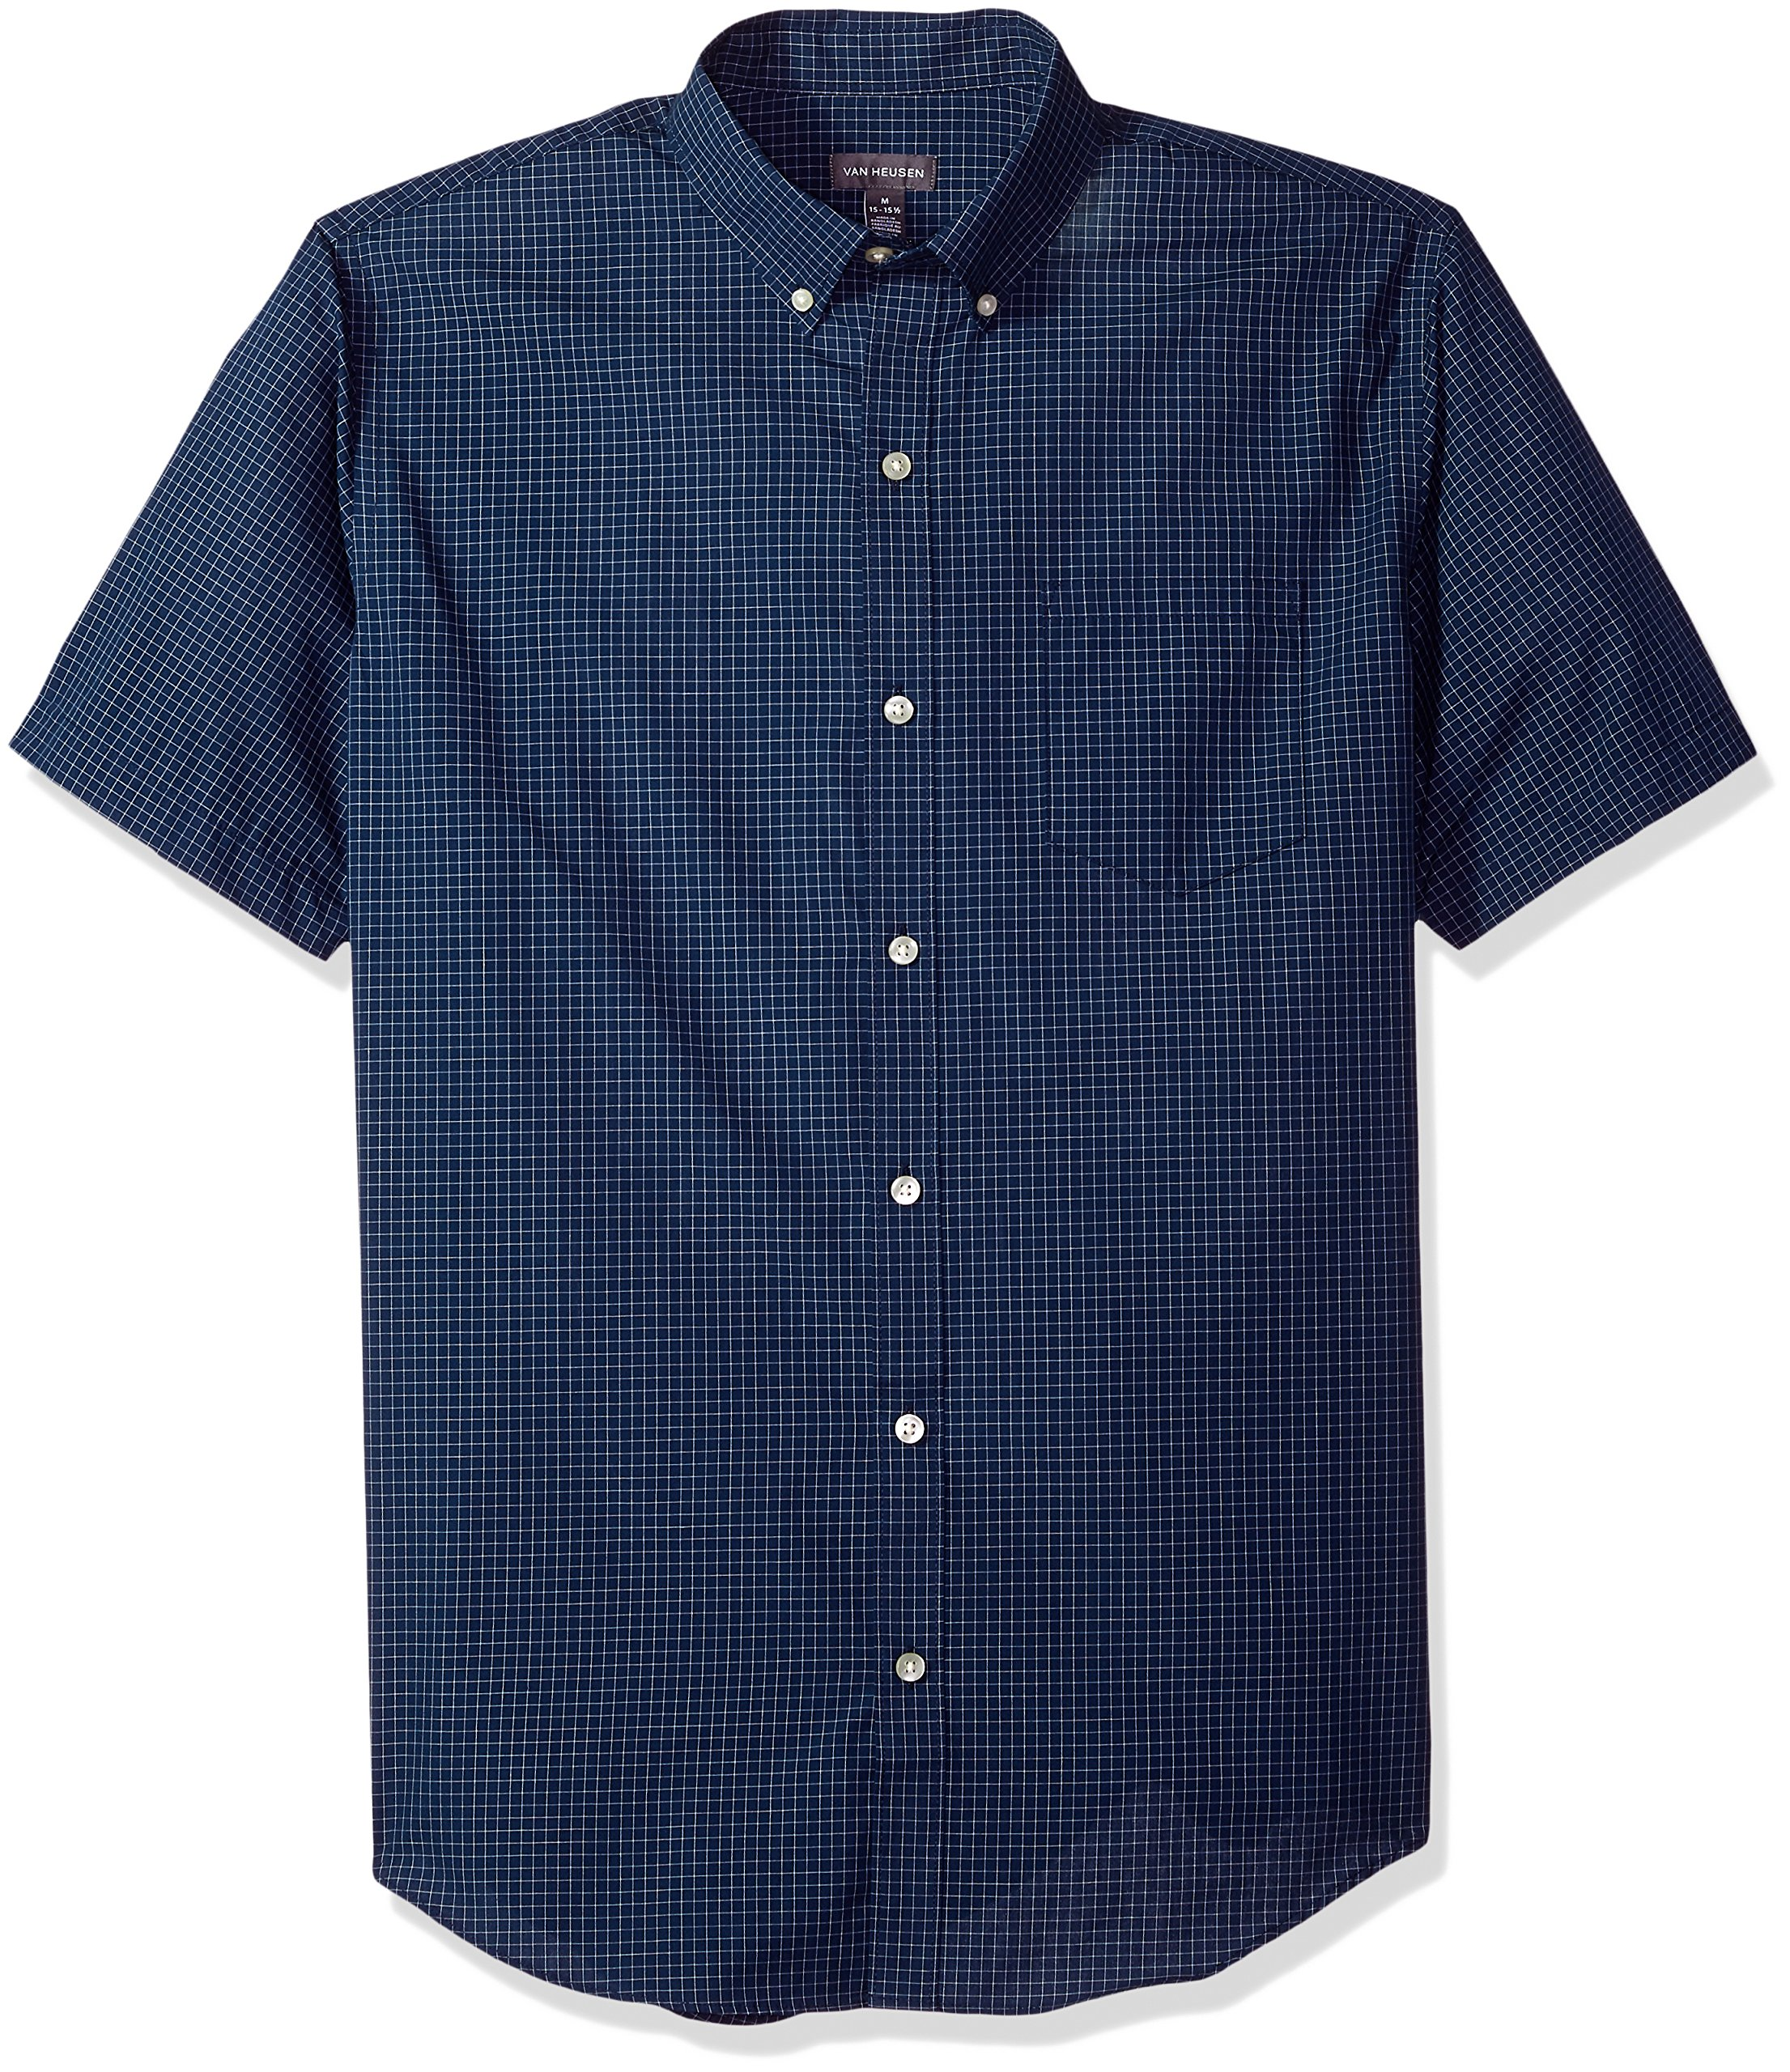 Van Heusen Men's Wrinkle Free Short Sleeve Button Down Shirt, Carbon Blue, Small